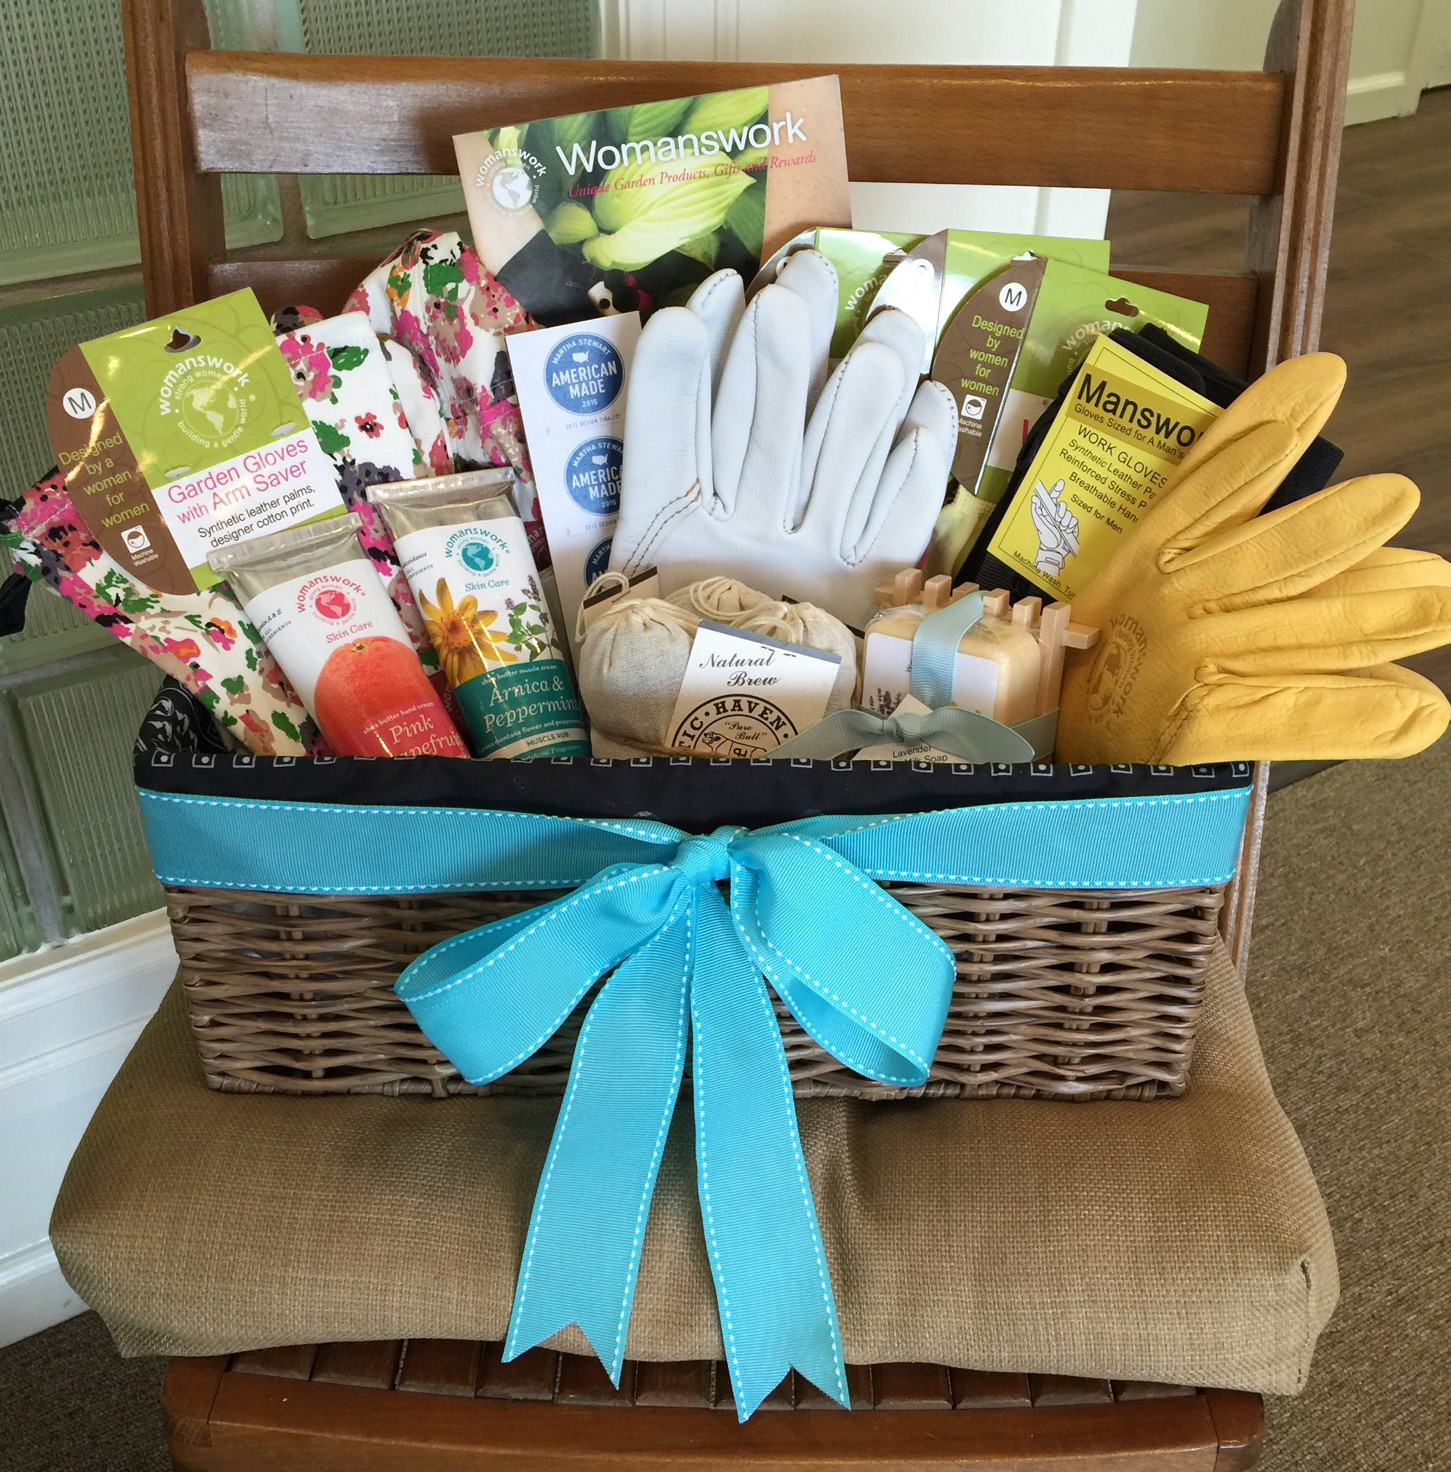 designer gardening gloves. Womanswork gift basket we presented as a thank you for hosting our group  Tags garden gloves Meeting Martha Stewart womanswork com